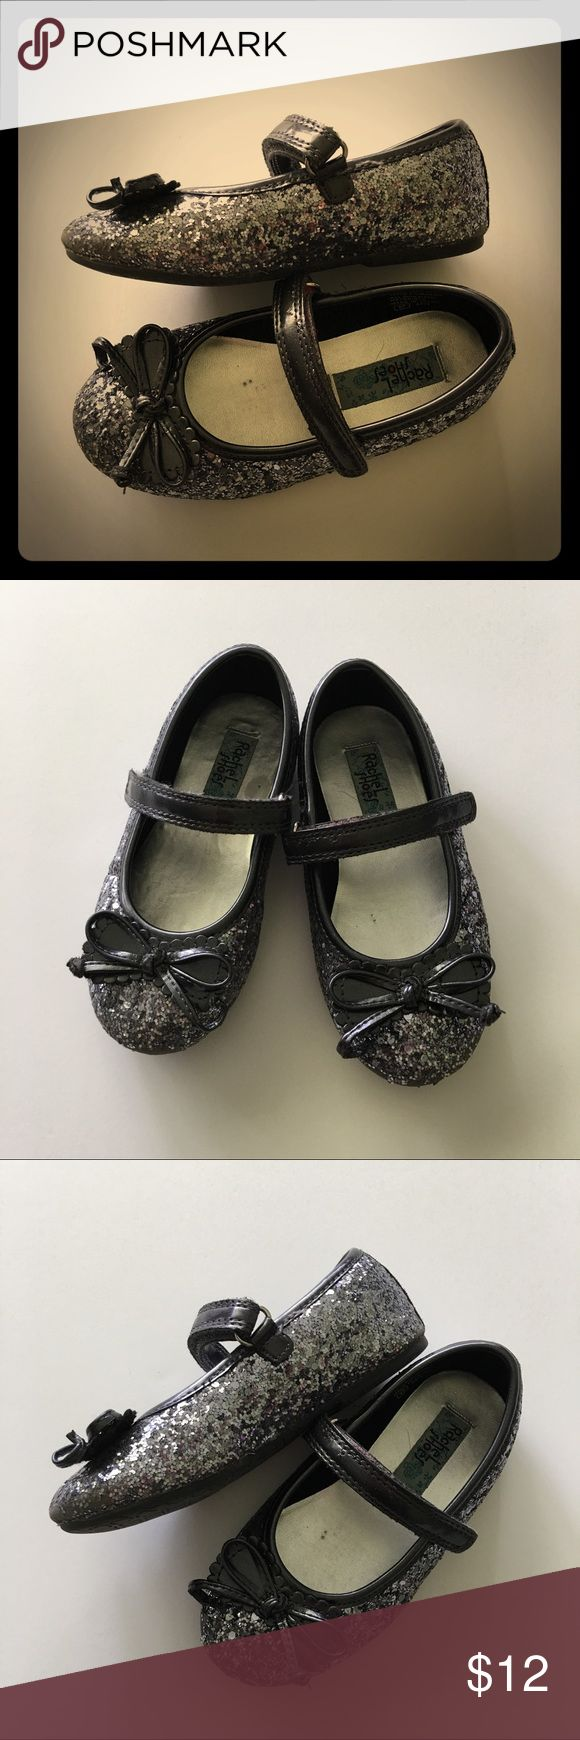 Adorable Sparkle Flats Charcoal gray sparkle flats by Rachel Shoes. They are a toddler girl size 9. They show some signs of wear but still have lots of love left in them. Rachael Shoes Shoes Sandals & Flip Flops